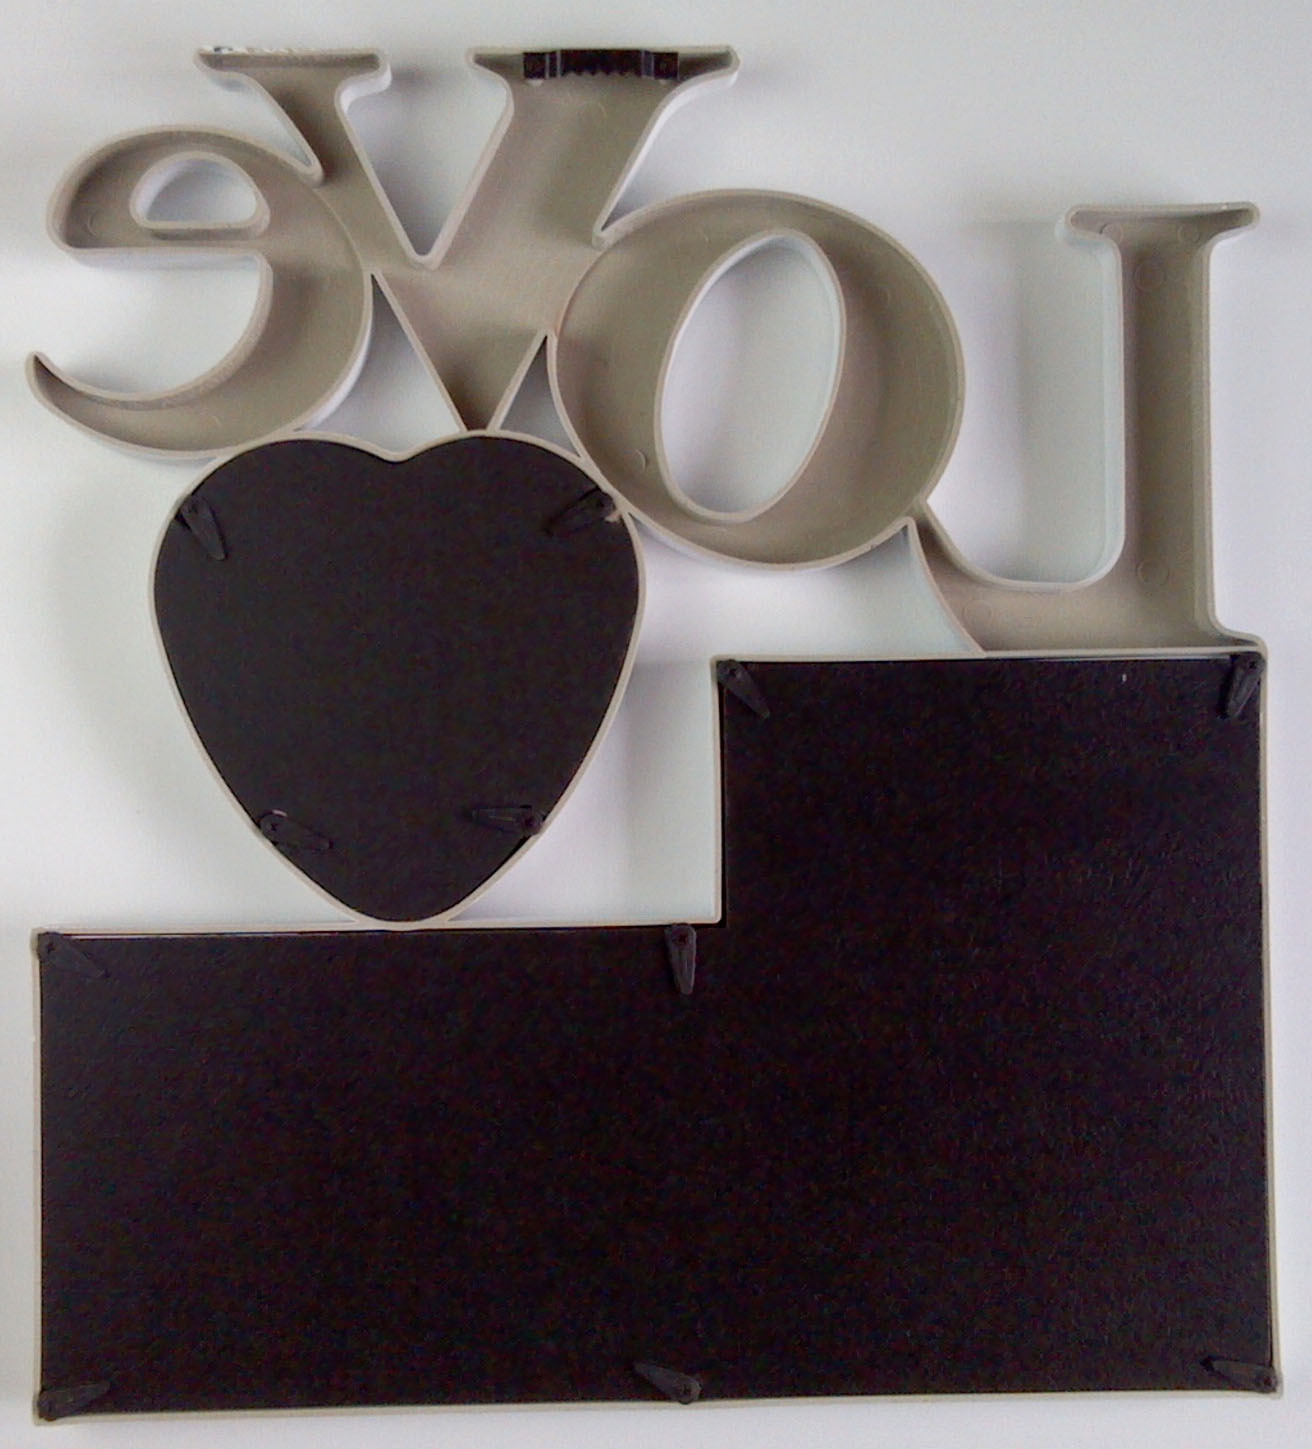 37X34CM Creative Combination Plastic Love Frame Family Home DIY Photos Wall Hanging Gift